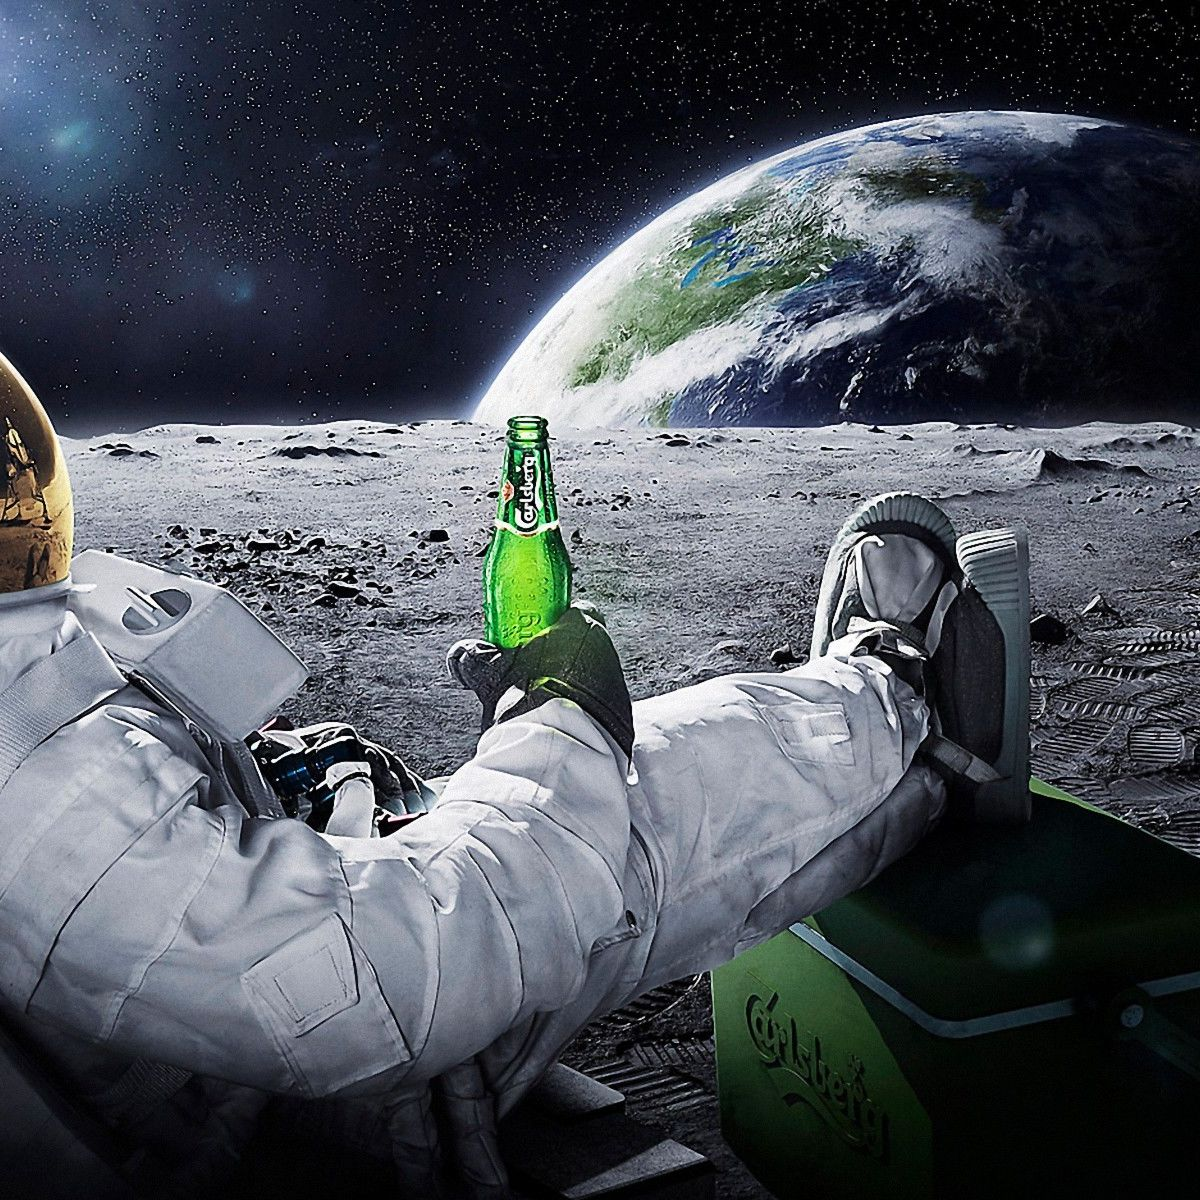 22917_3d_space_scene_astronaut_chilling_on_the_moon_with_beer_0.jpg